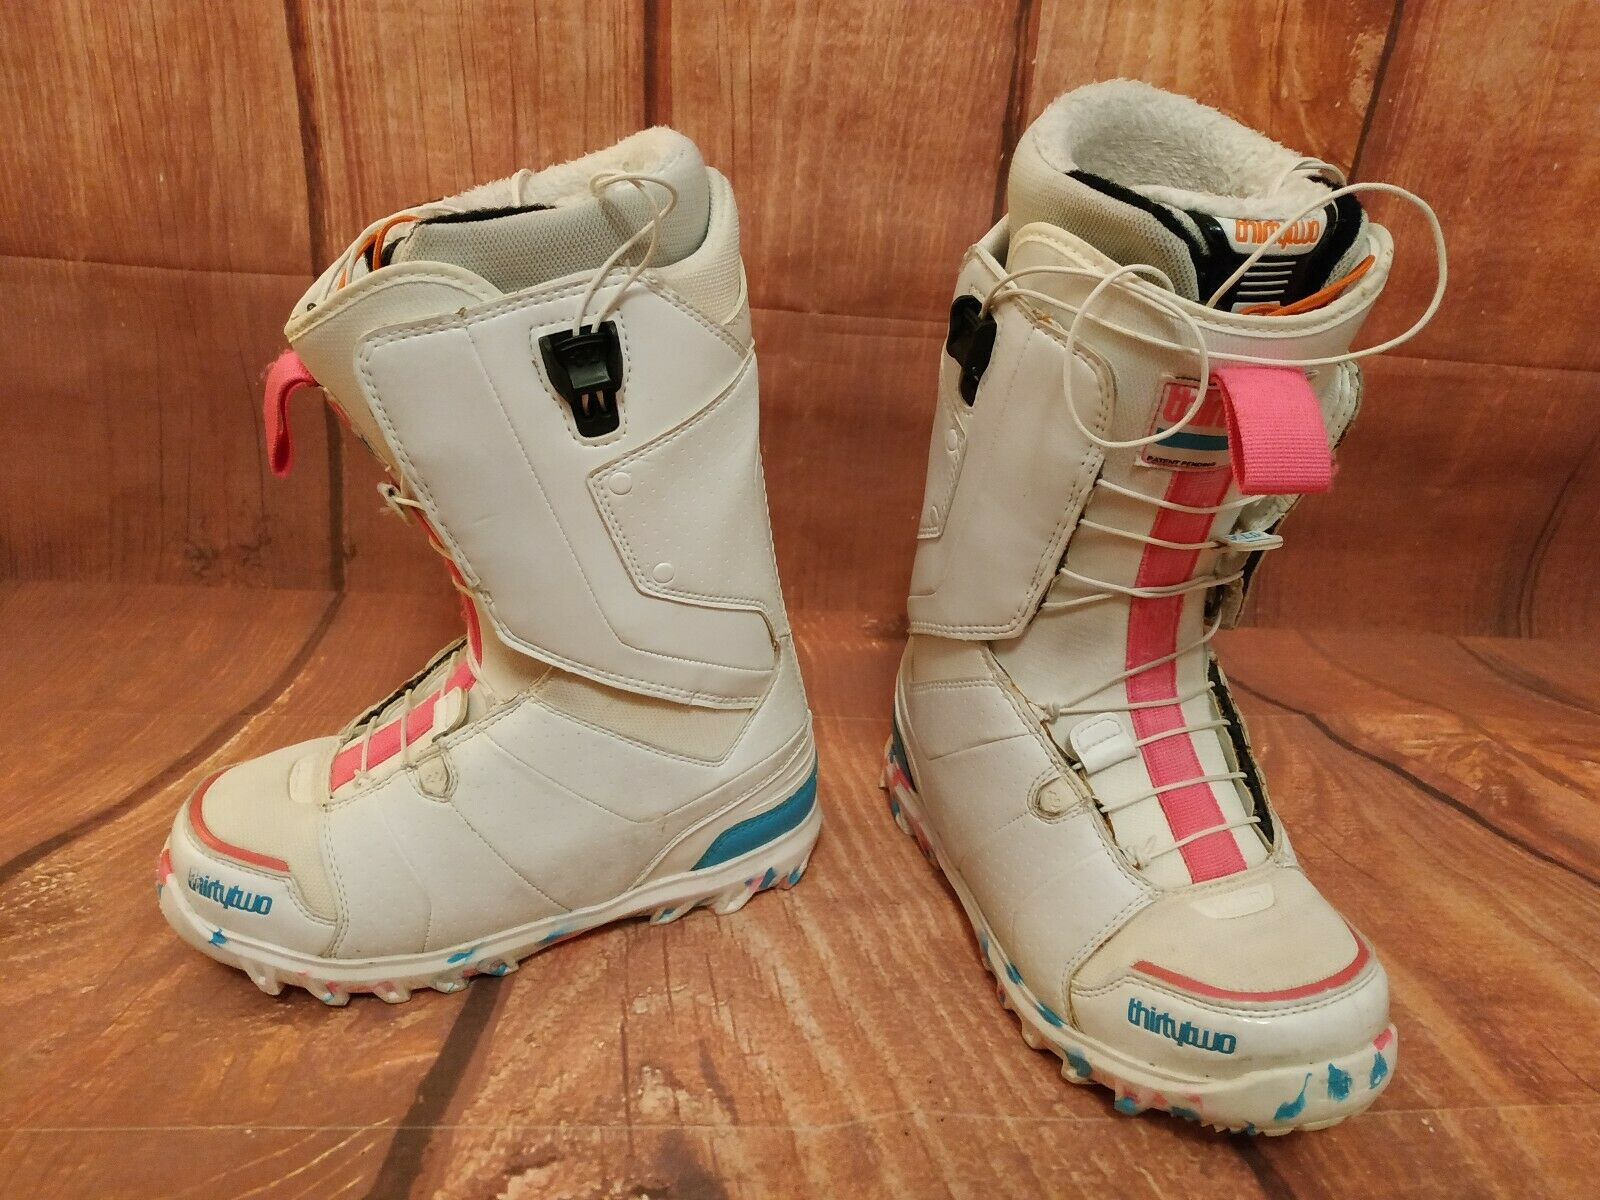 Women's snowboard boots size 5.5 THIRTYTWO LASHED FT  London 976  fast shipping